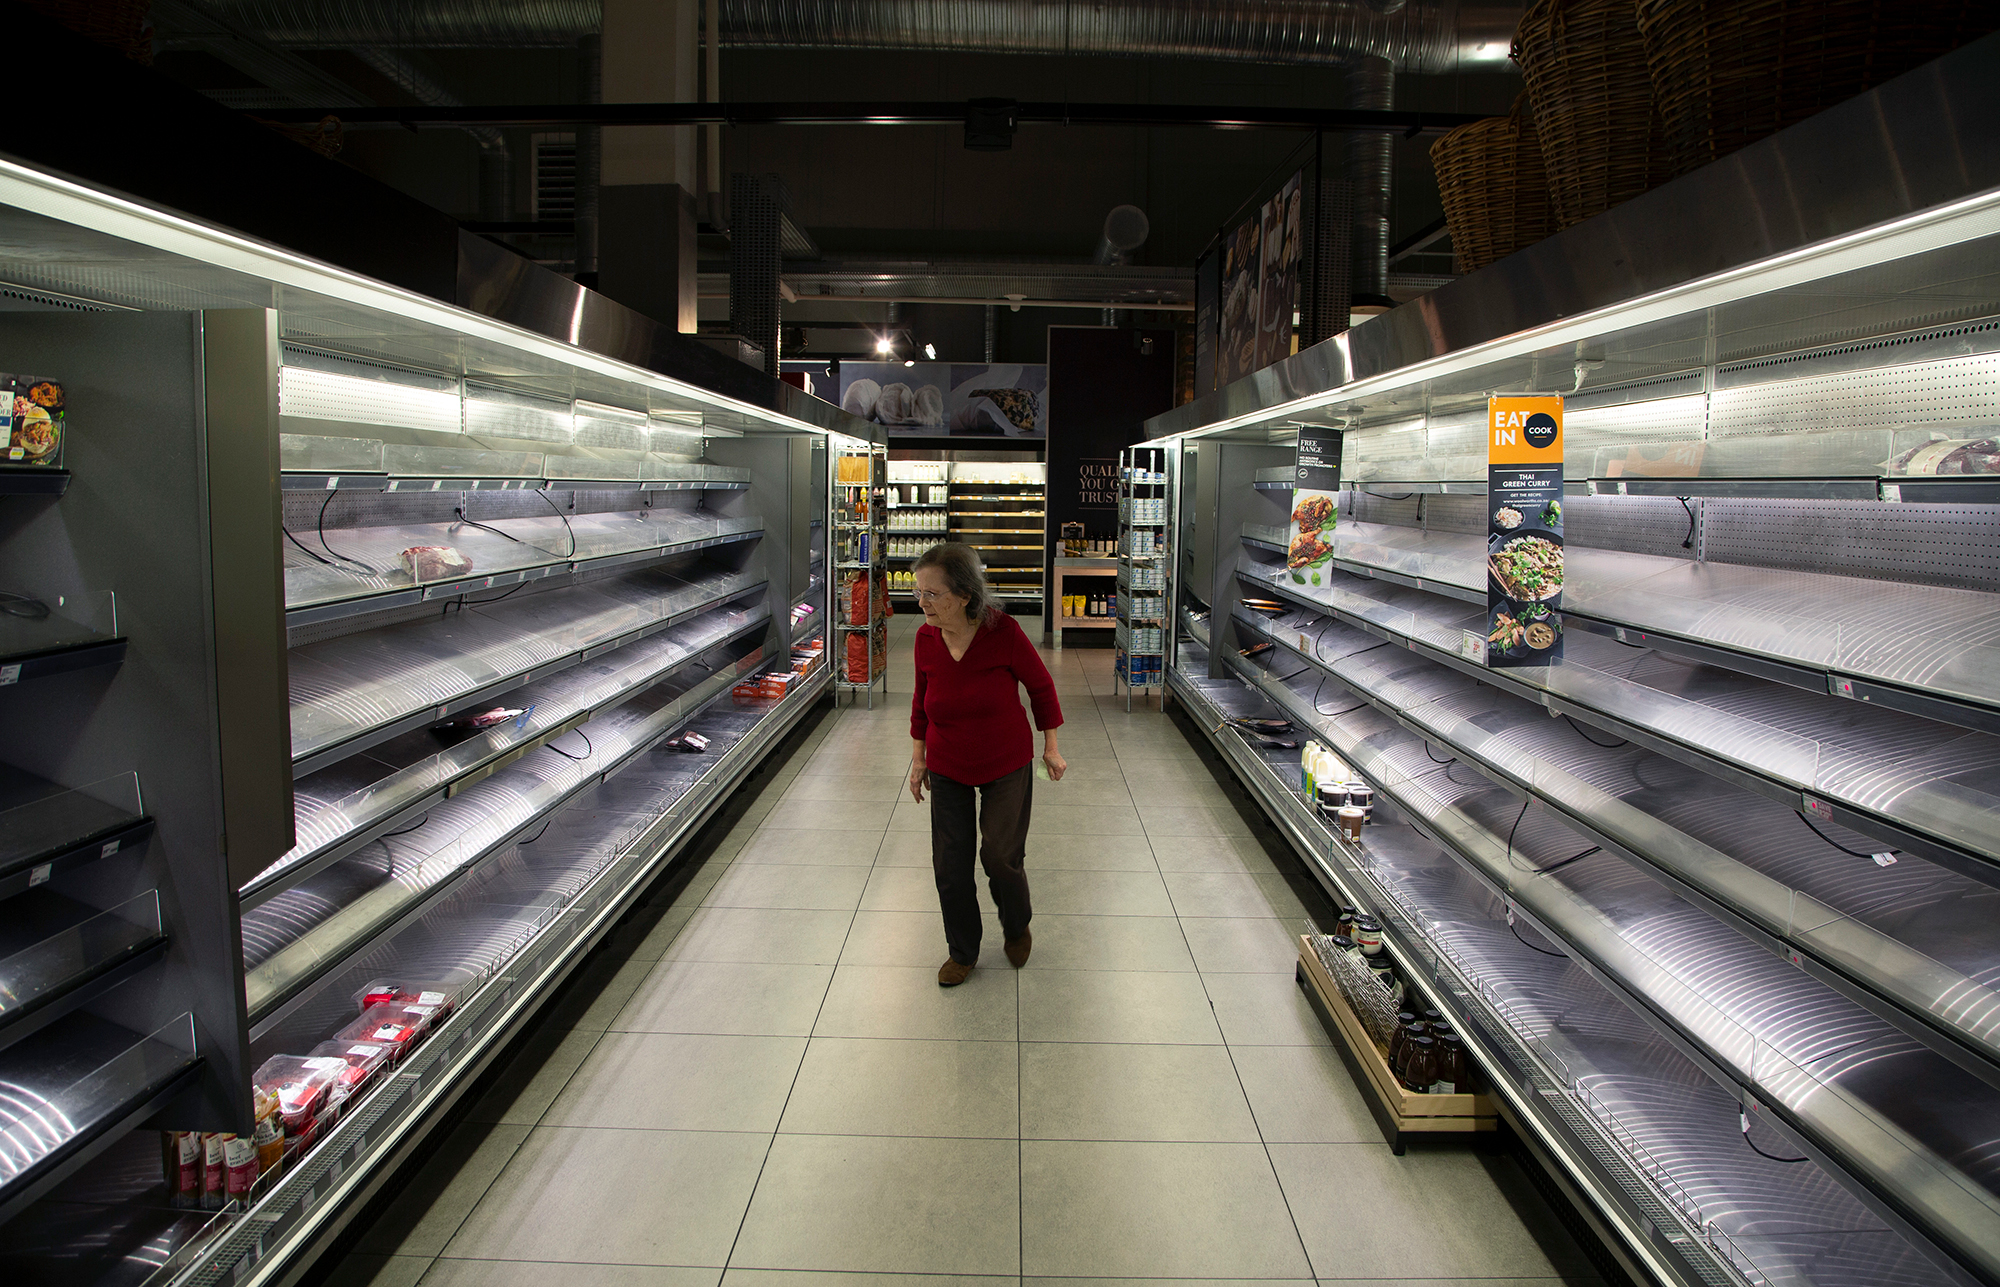 A woman looks at the few items left in the fresh meat and poultry fridges in a Johannesburg supermarket, Wednesday, March 18, amid panic-buying due to the coronavirus outbreak.